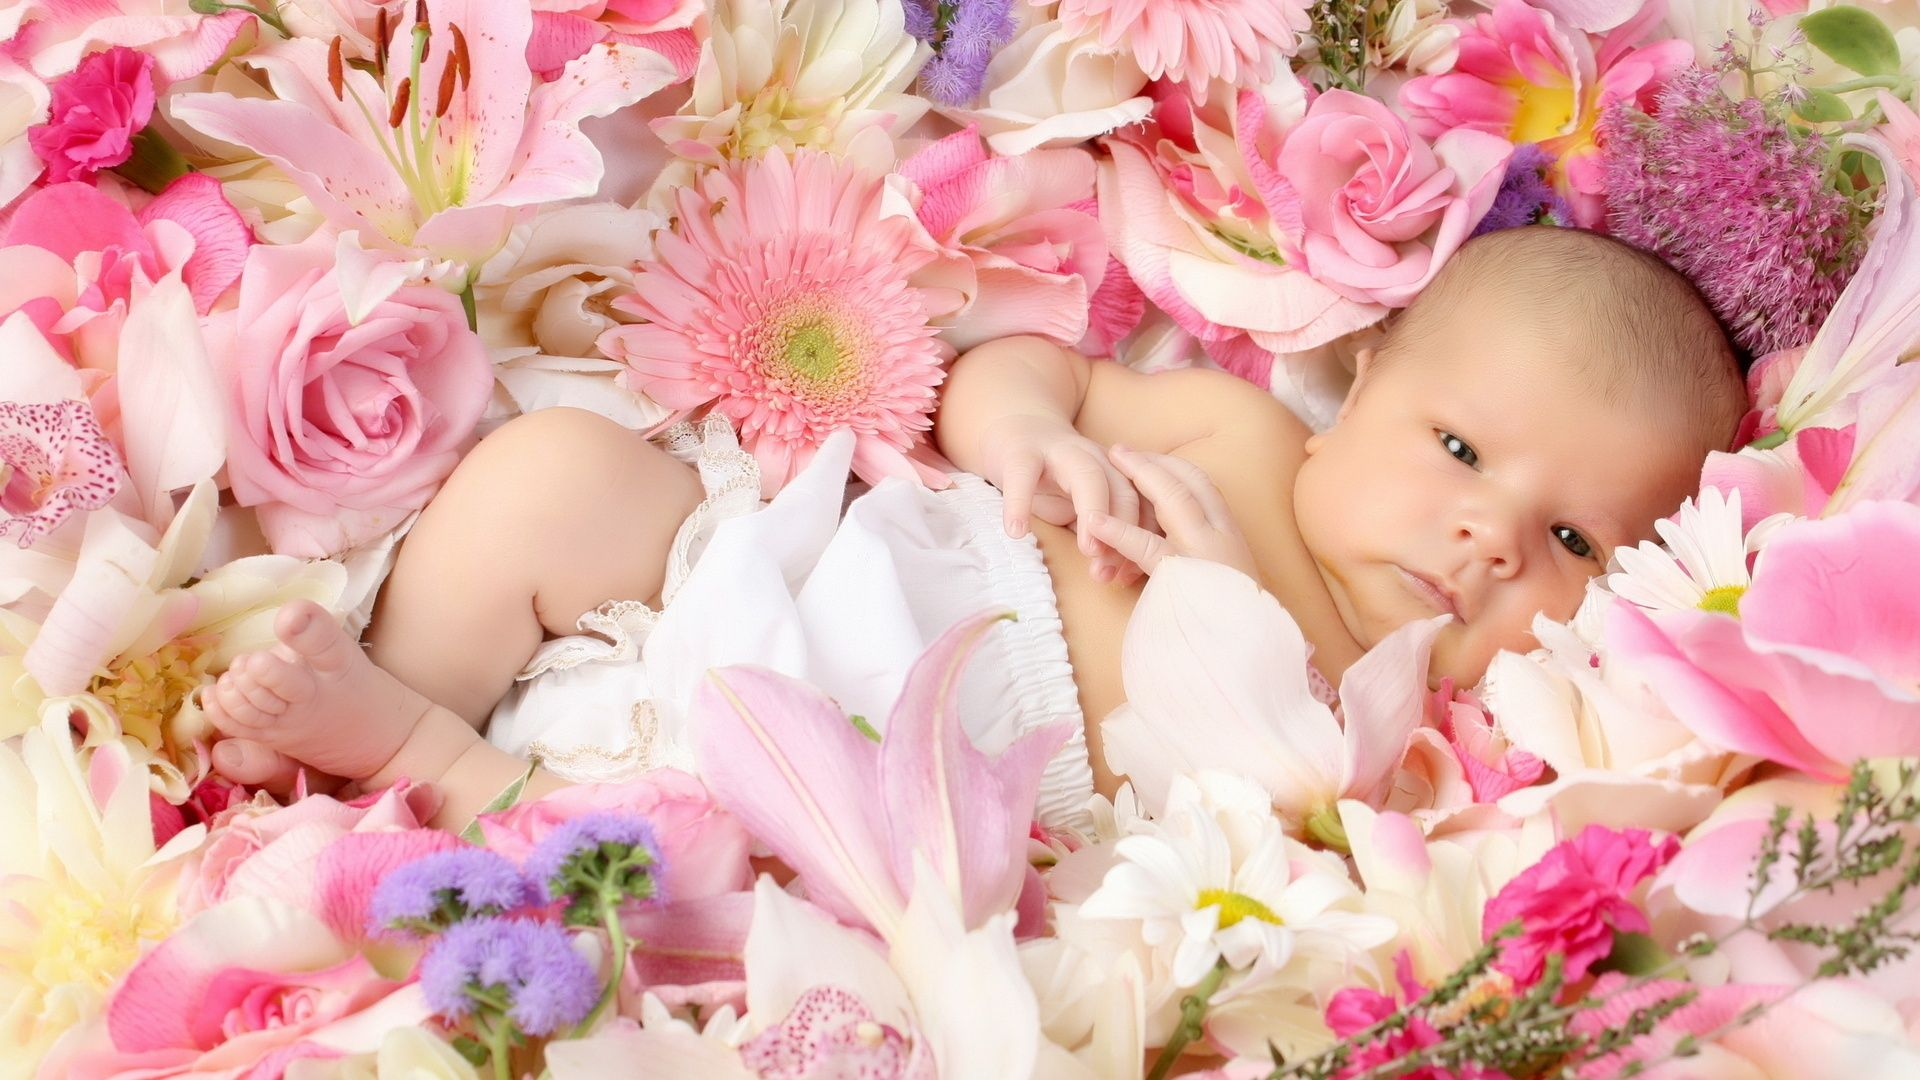 Nature With Images Cute Baby Wallpaper Cute Baby Pictures Baby Wallpaper